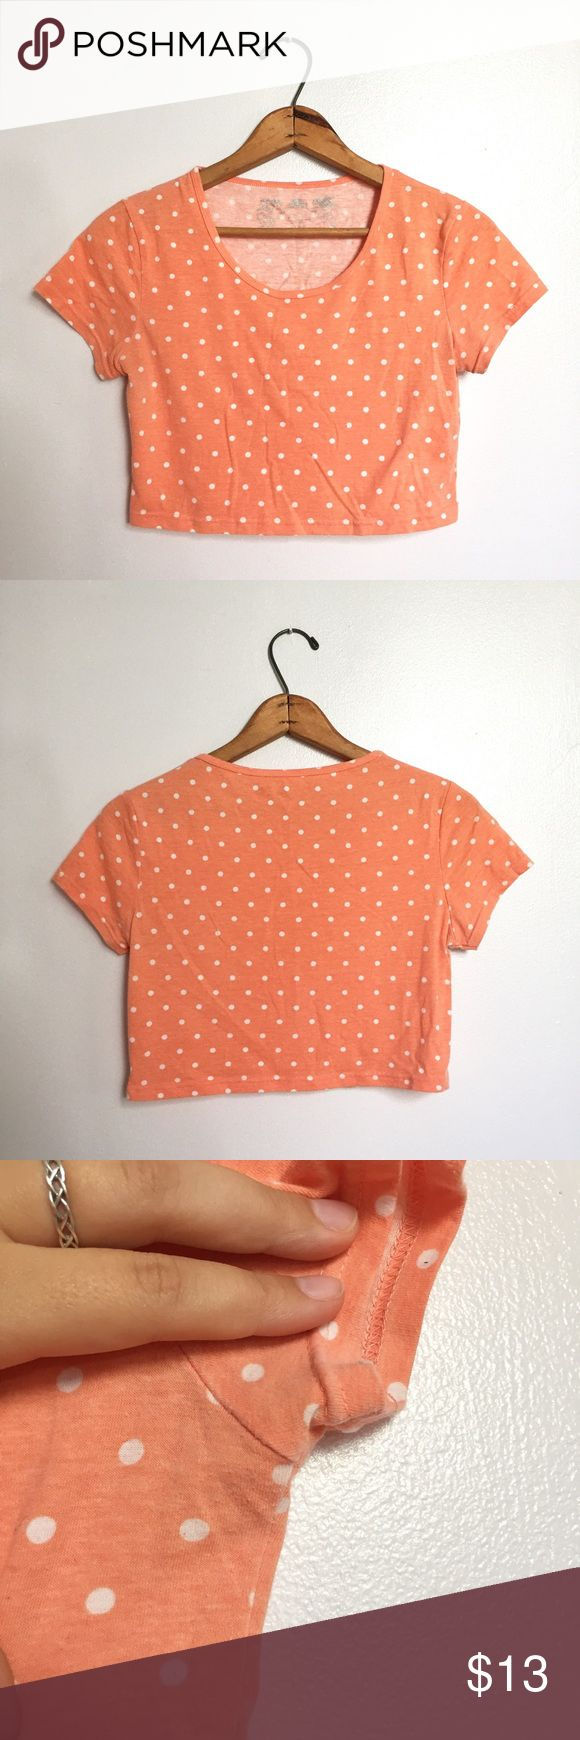 "Peach & white polka dot crop top - Size: L - Condition: some very faint pilling in the armpit area, not seen when worn or really at all - Color: peach and white - Pockets: no - Lined: no - Closure: none - Style: polka dot crop top - Extra notes: bust is approx 16.5"" flat, length is approx 14.75"" Poof! Tops Crop Tops"